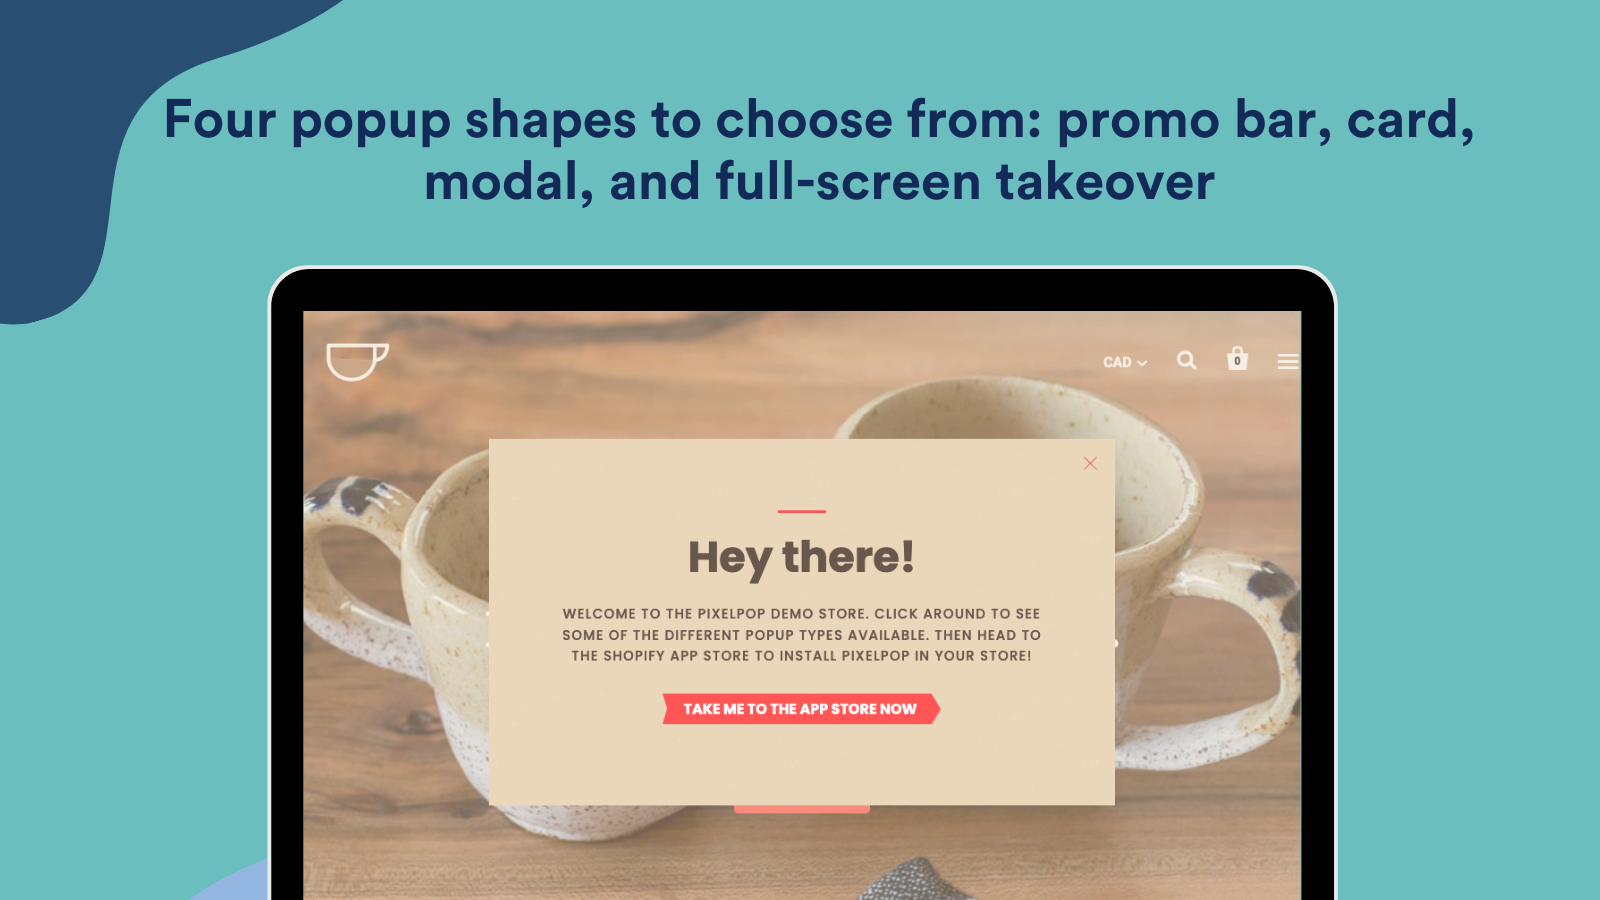 Four popup shapes to choose from including full screen takeover